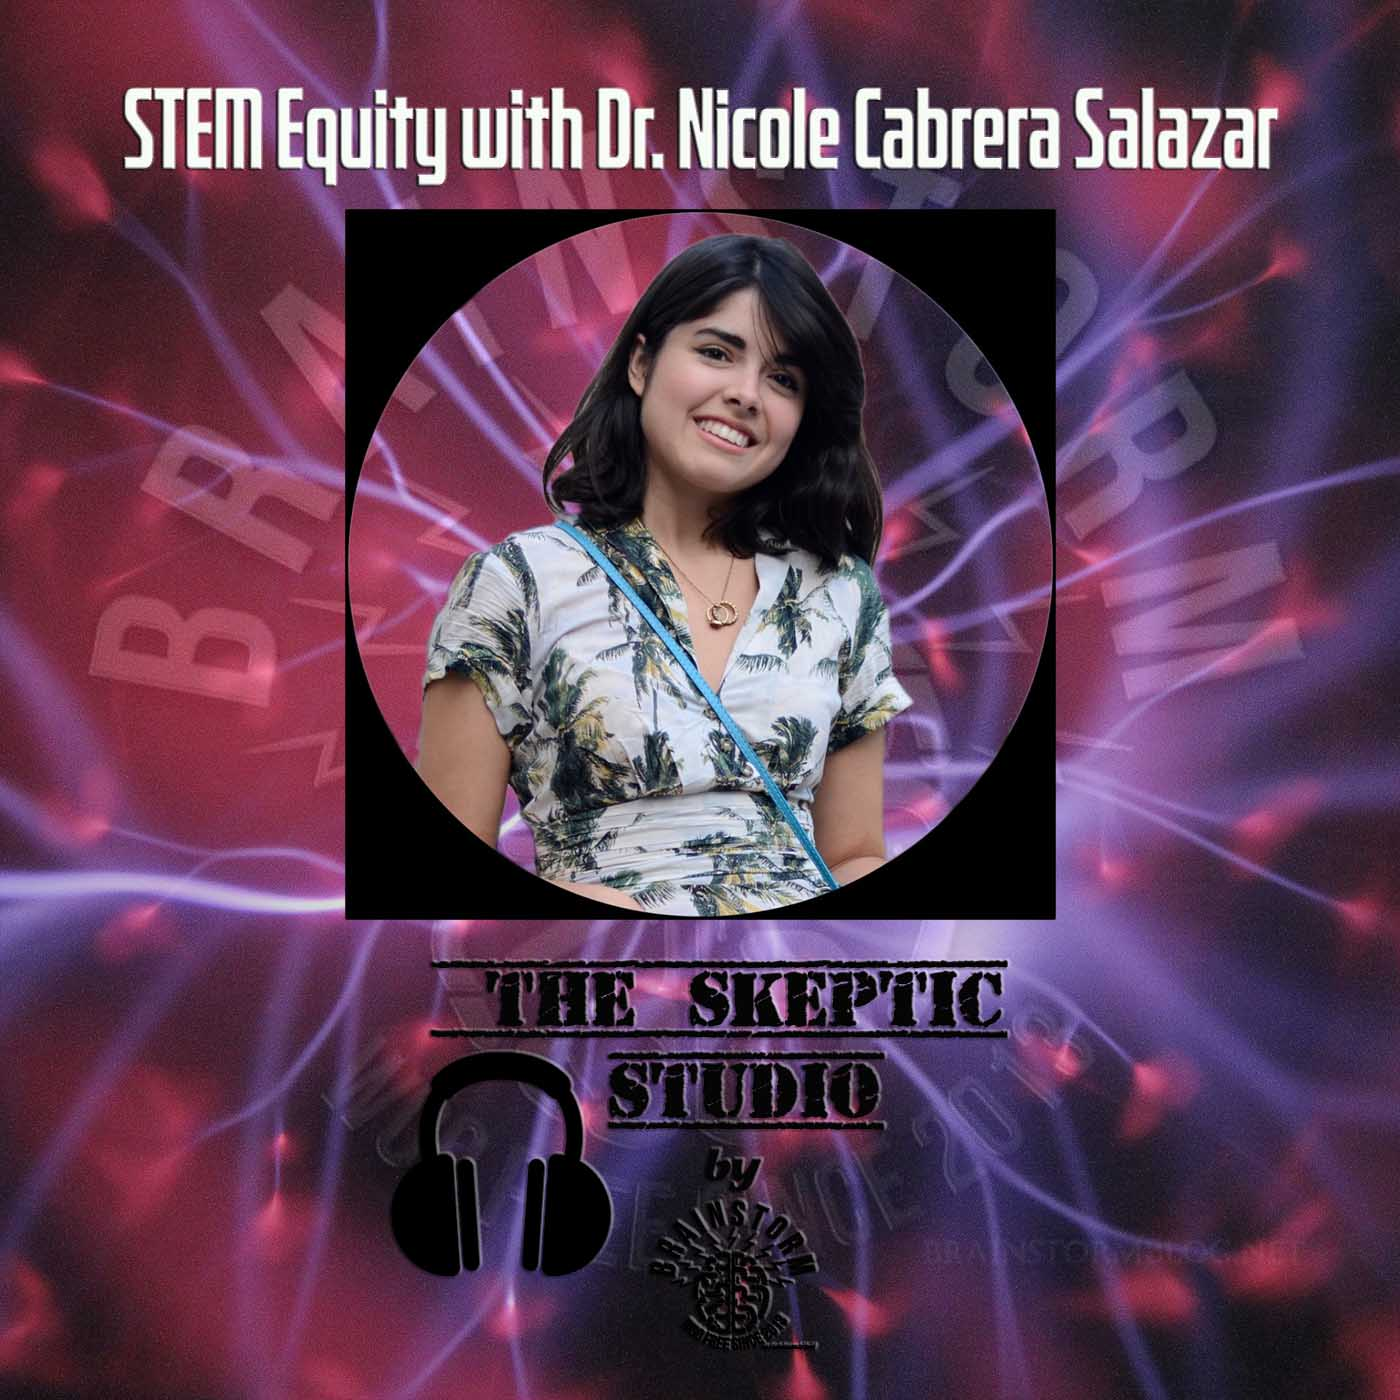 STEM Equity with Nicole Cabrera Salazar (square).jpg